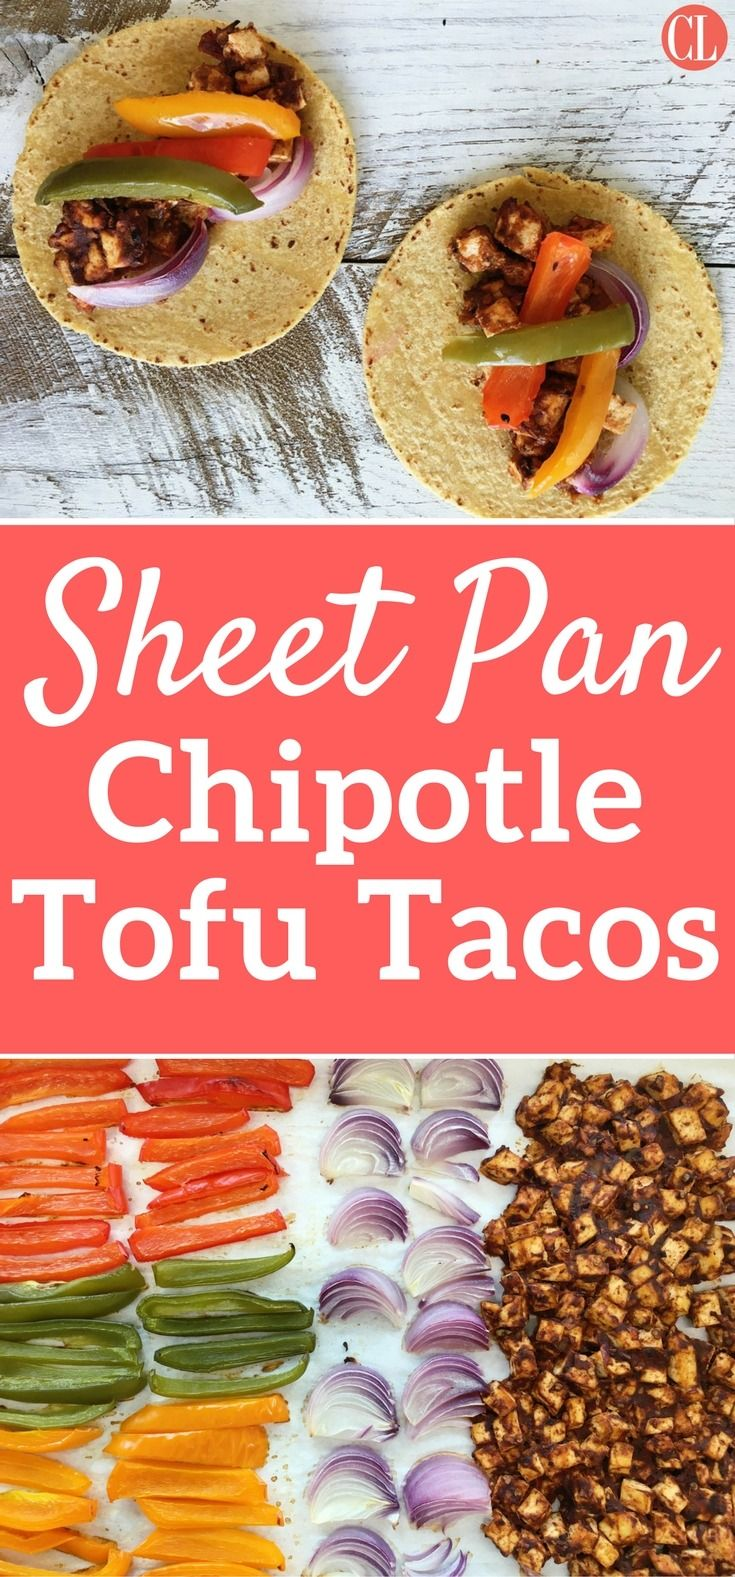 Enjoy tacos while also keeping your weeknight dinner fast, easy, and mess-free. All you need is a sheet pan, food processor, and bowl for this vegan recipe. Richly spiced chipotle tofu gets delectably chewy while brightly colored veggies sear for a flavorful taco filling that is sure to be a new member of your weekly recipe rotation. | Cooking Light